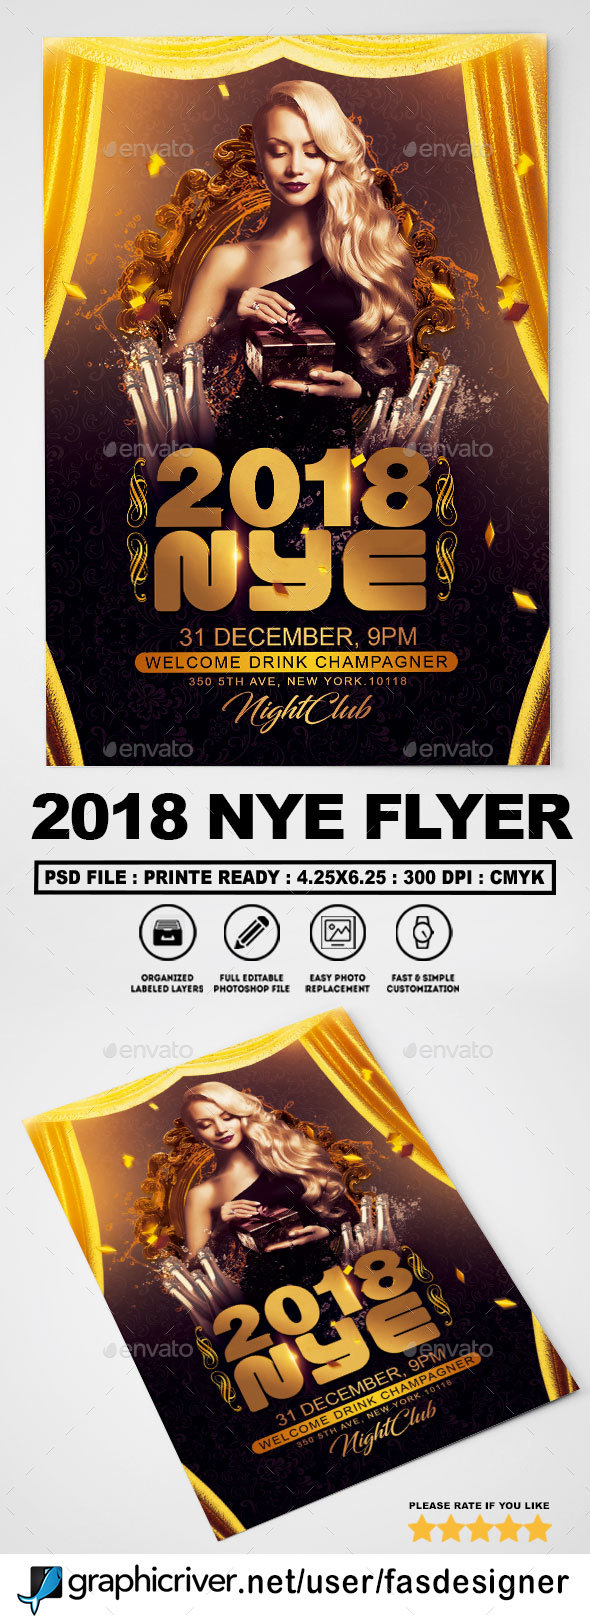 GraphicRiver 2018 NYE Flyer 21140819